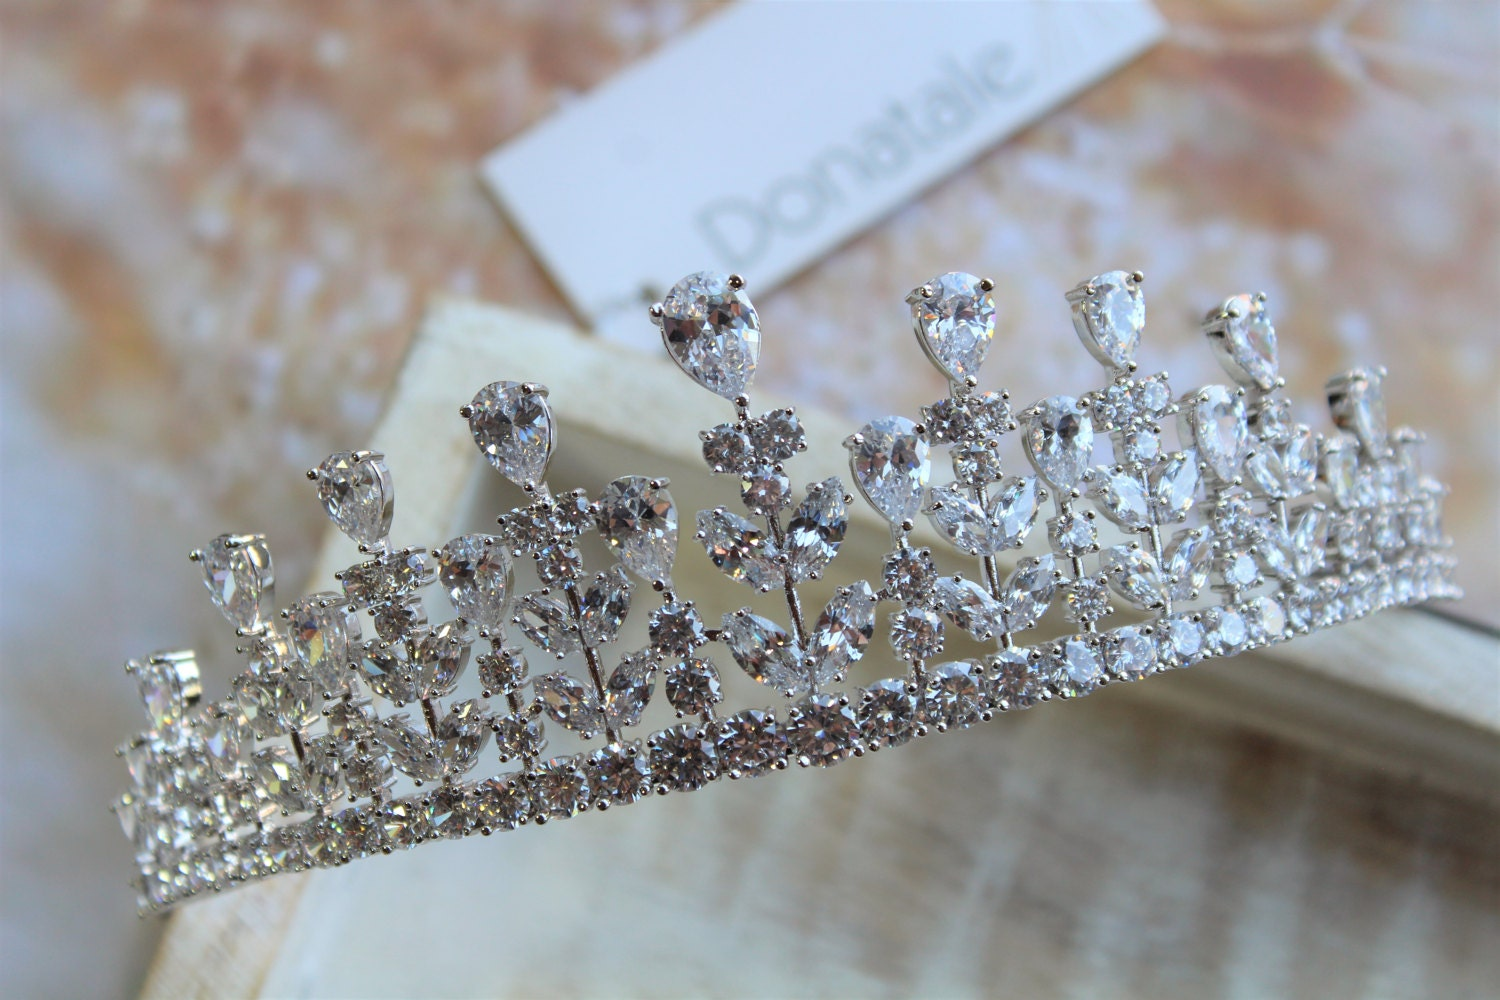 Bridal Tiara Wedding hair piece  Wedding TiaraCrystal Crown  Wedding Hairpiece  Bridal headpiece Rhinestone Tiara  Diamante Crown